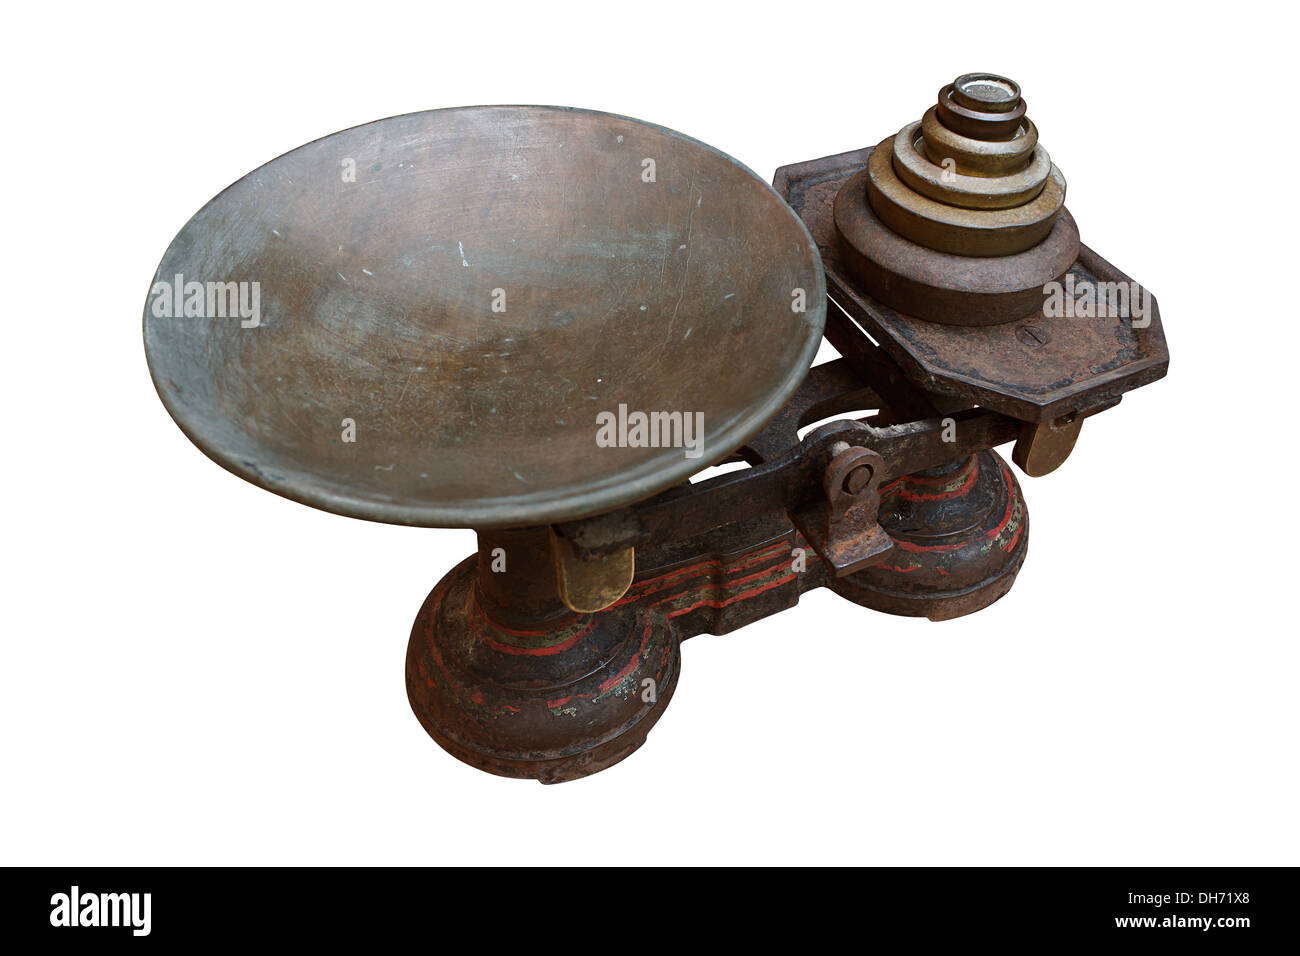 Antique set of Grocers scales - Stock Image